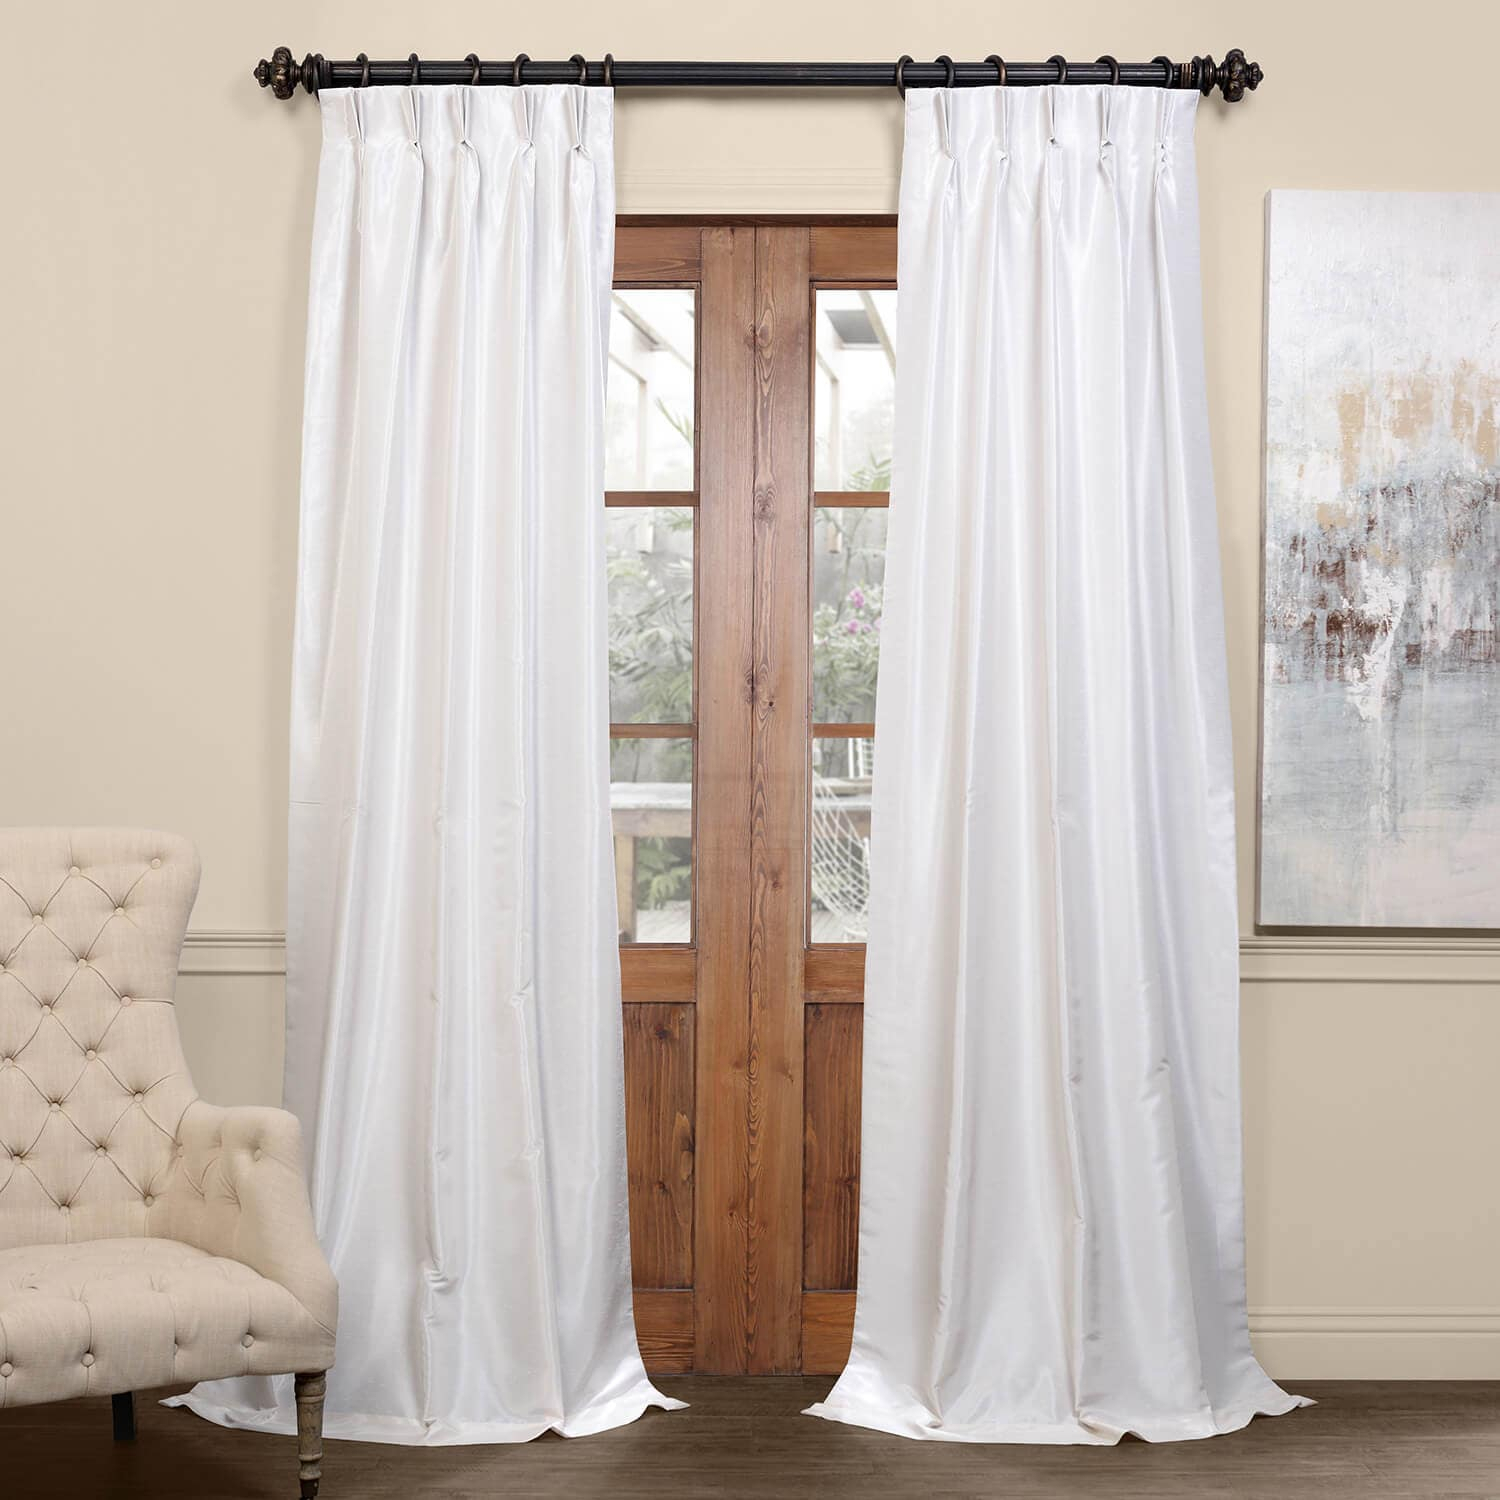 Off White Blackout Vintage Textured Faux Dupioni Pleated Curtain In Vintage Textured Faux Dupioni Silk Curtain Panels (View 13 of 30)